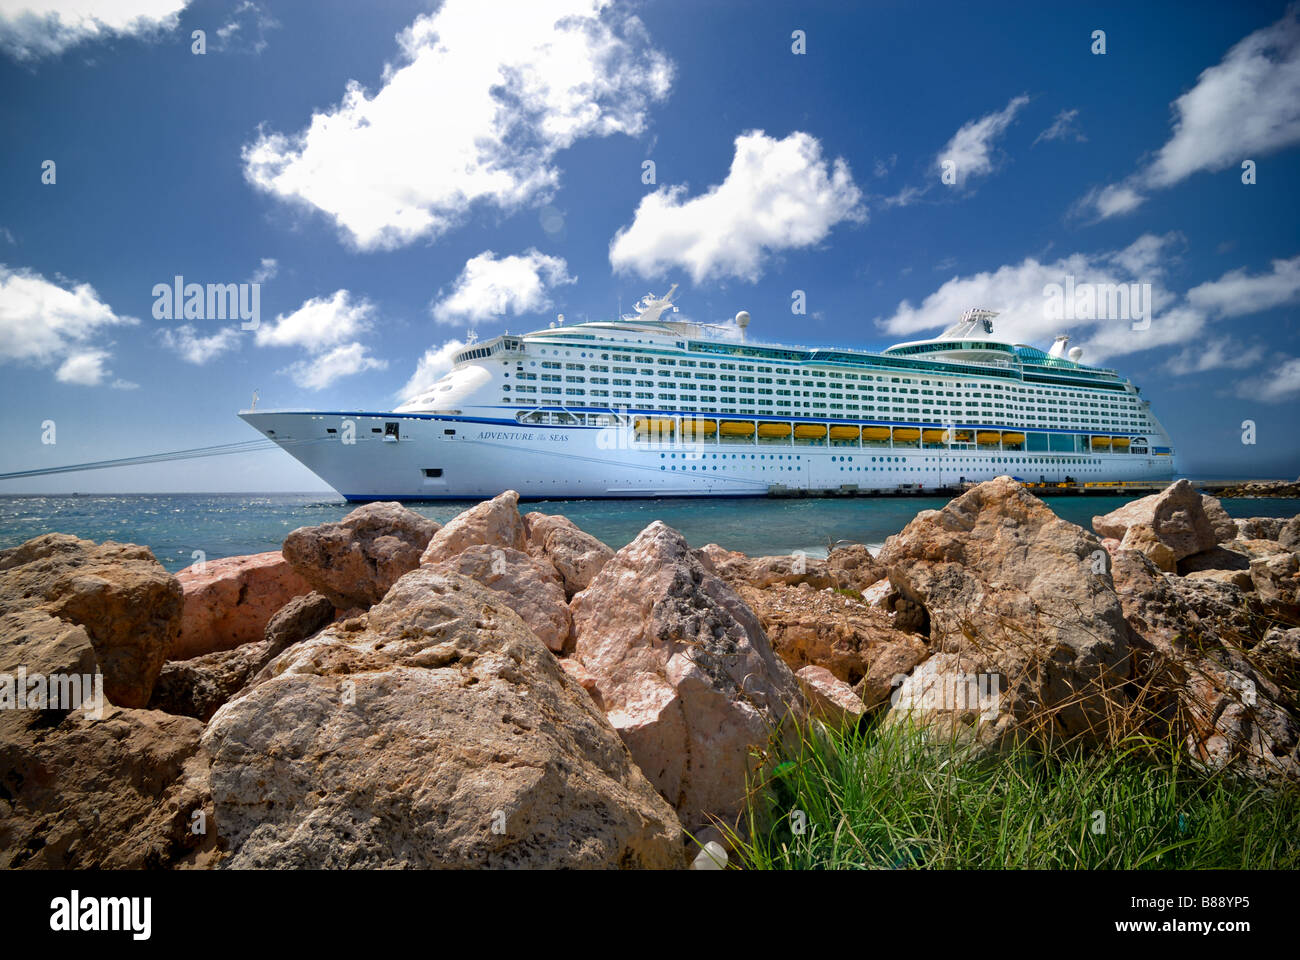 Royal Caribbean's Adventure of the Seas docked at Curacao, Netherlands Antilles (ABC Islands). - Stock Image